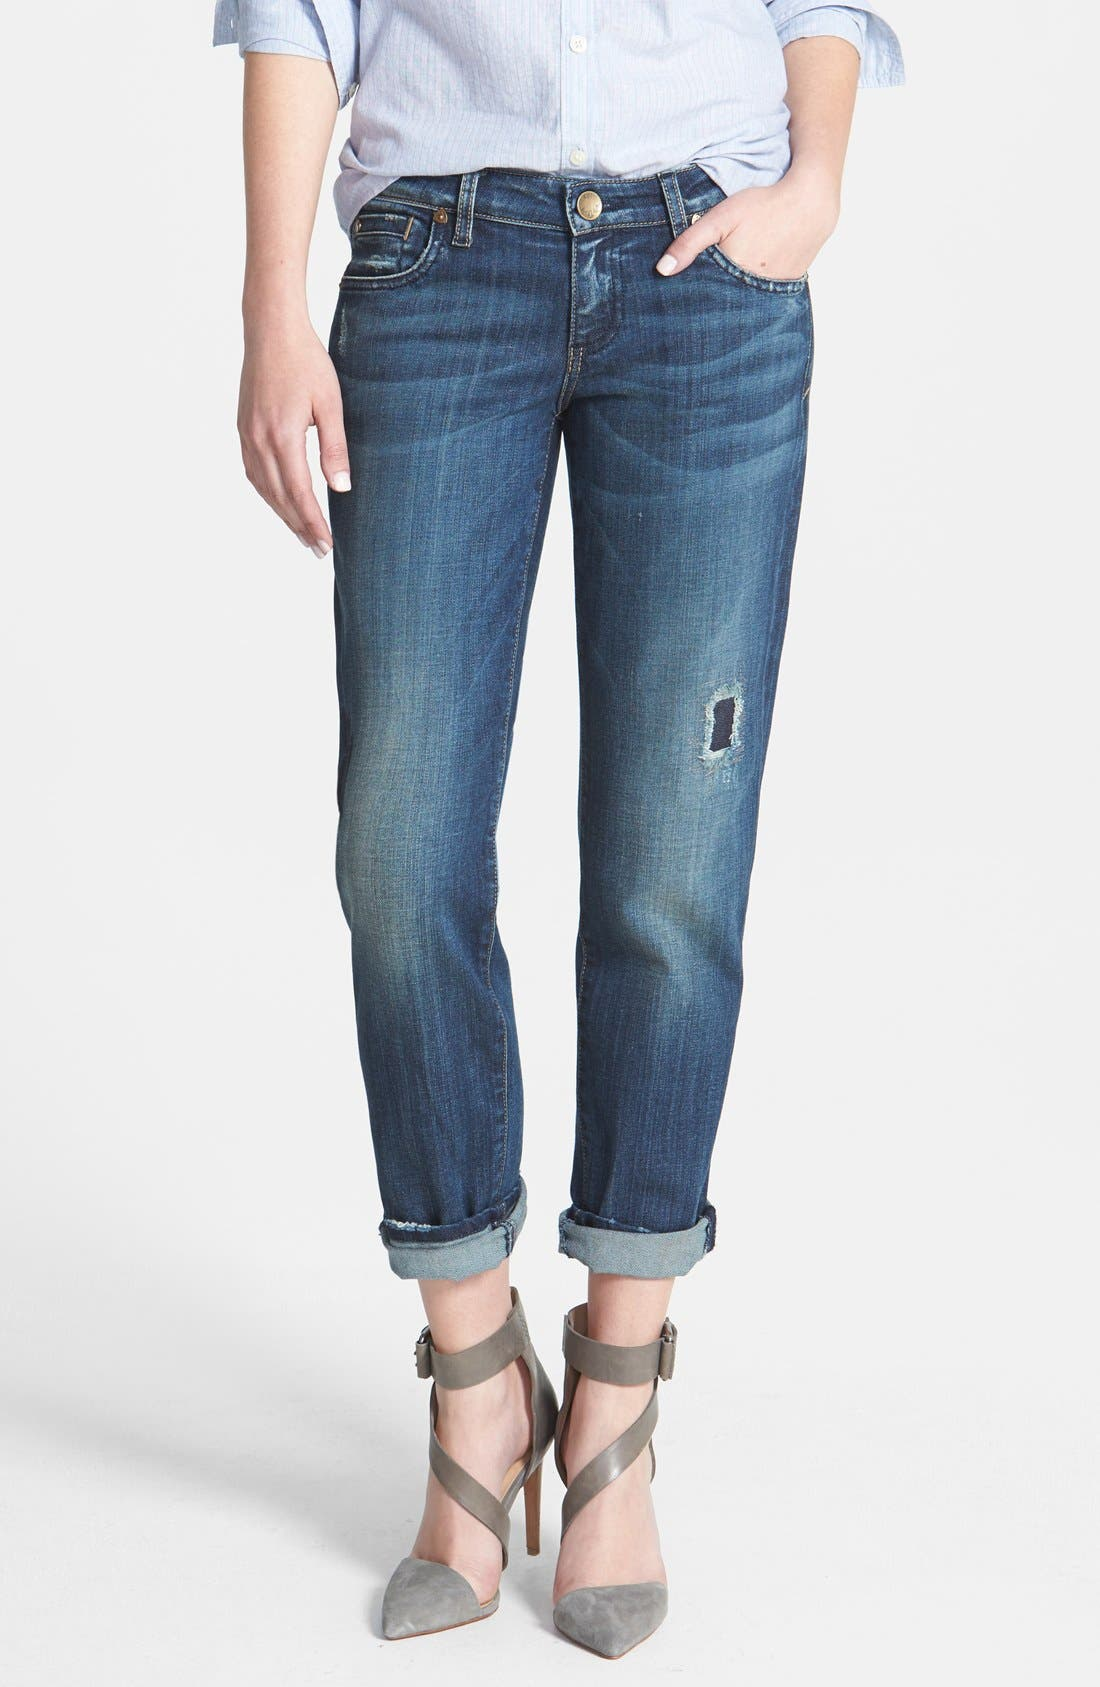 Main Image - KUT from the Kloth 'Catherine' Destructed Slim Boyfriend Jeans (Dimple)